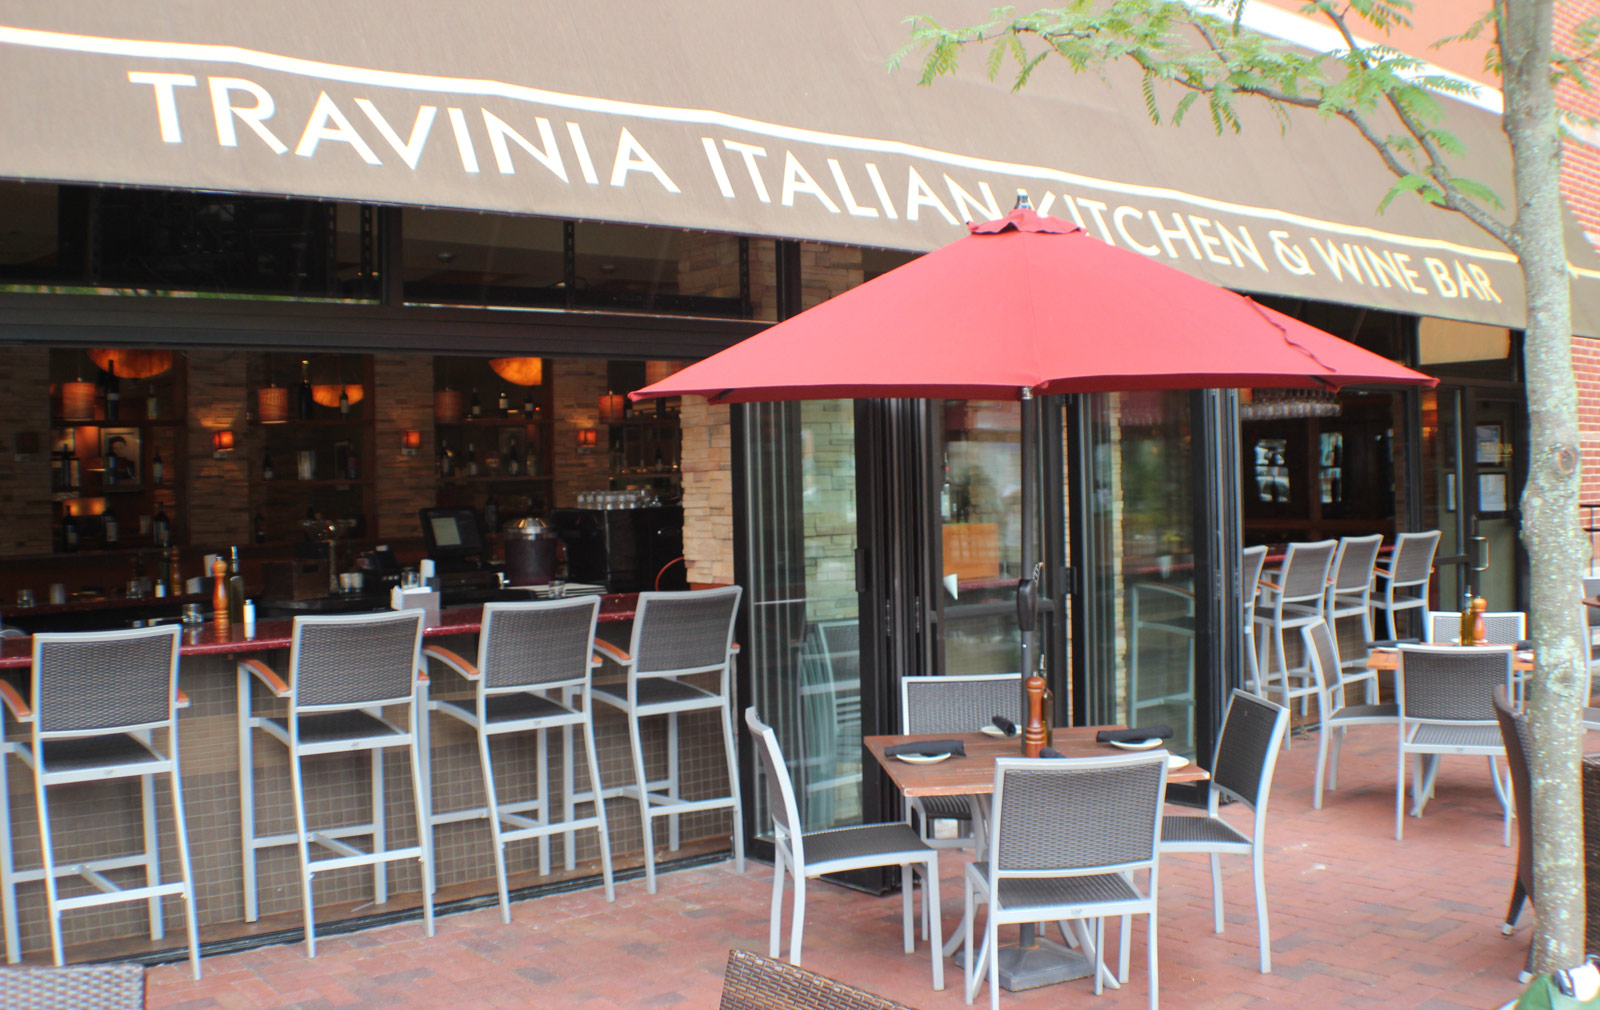 travinia italian kitchen u0026 wine bar leesburg va